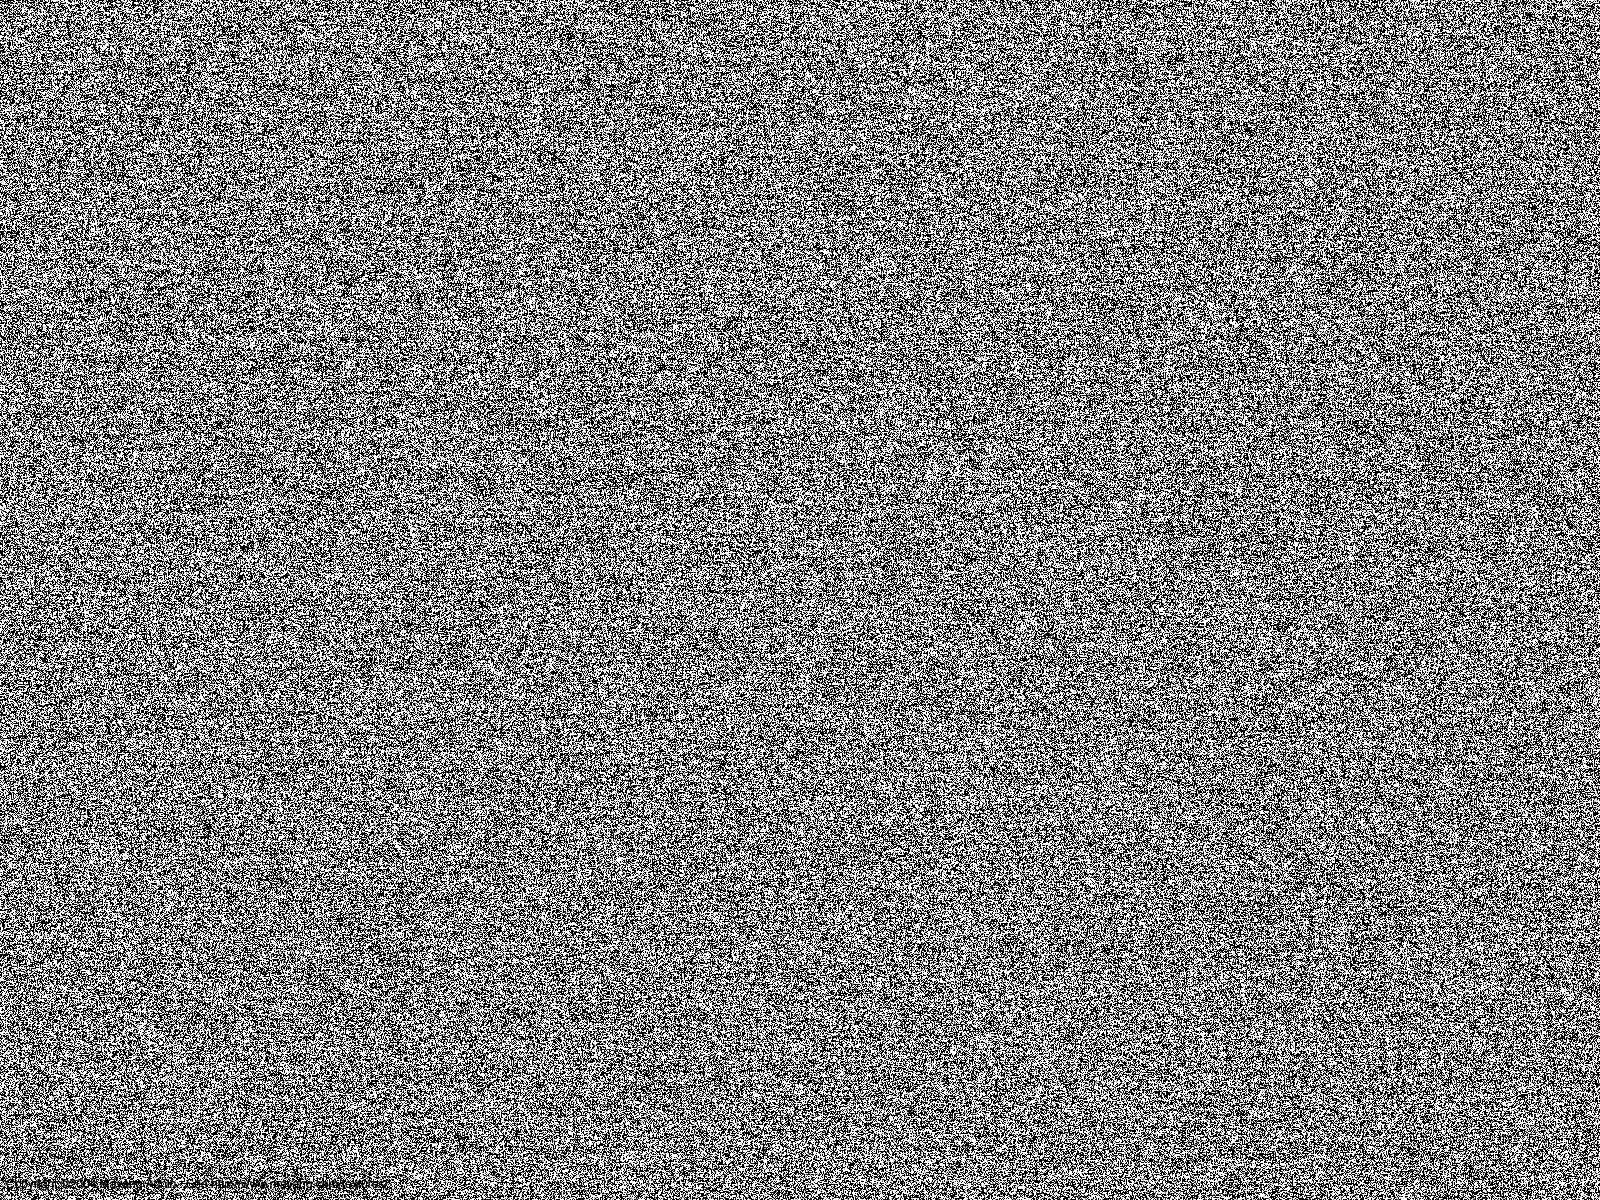 19 Noise Texture Photoshop Images Noise Texture Grunge